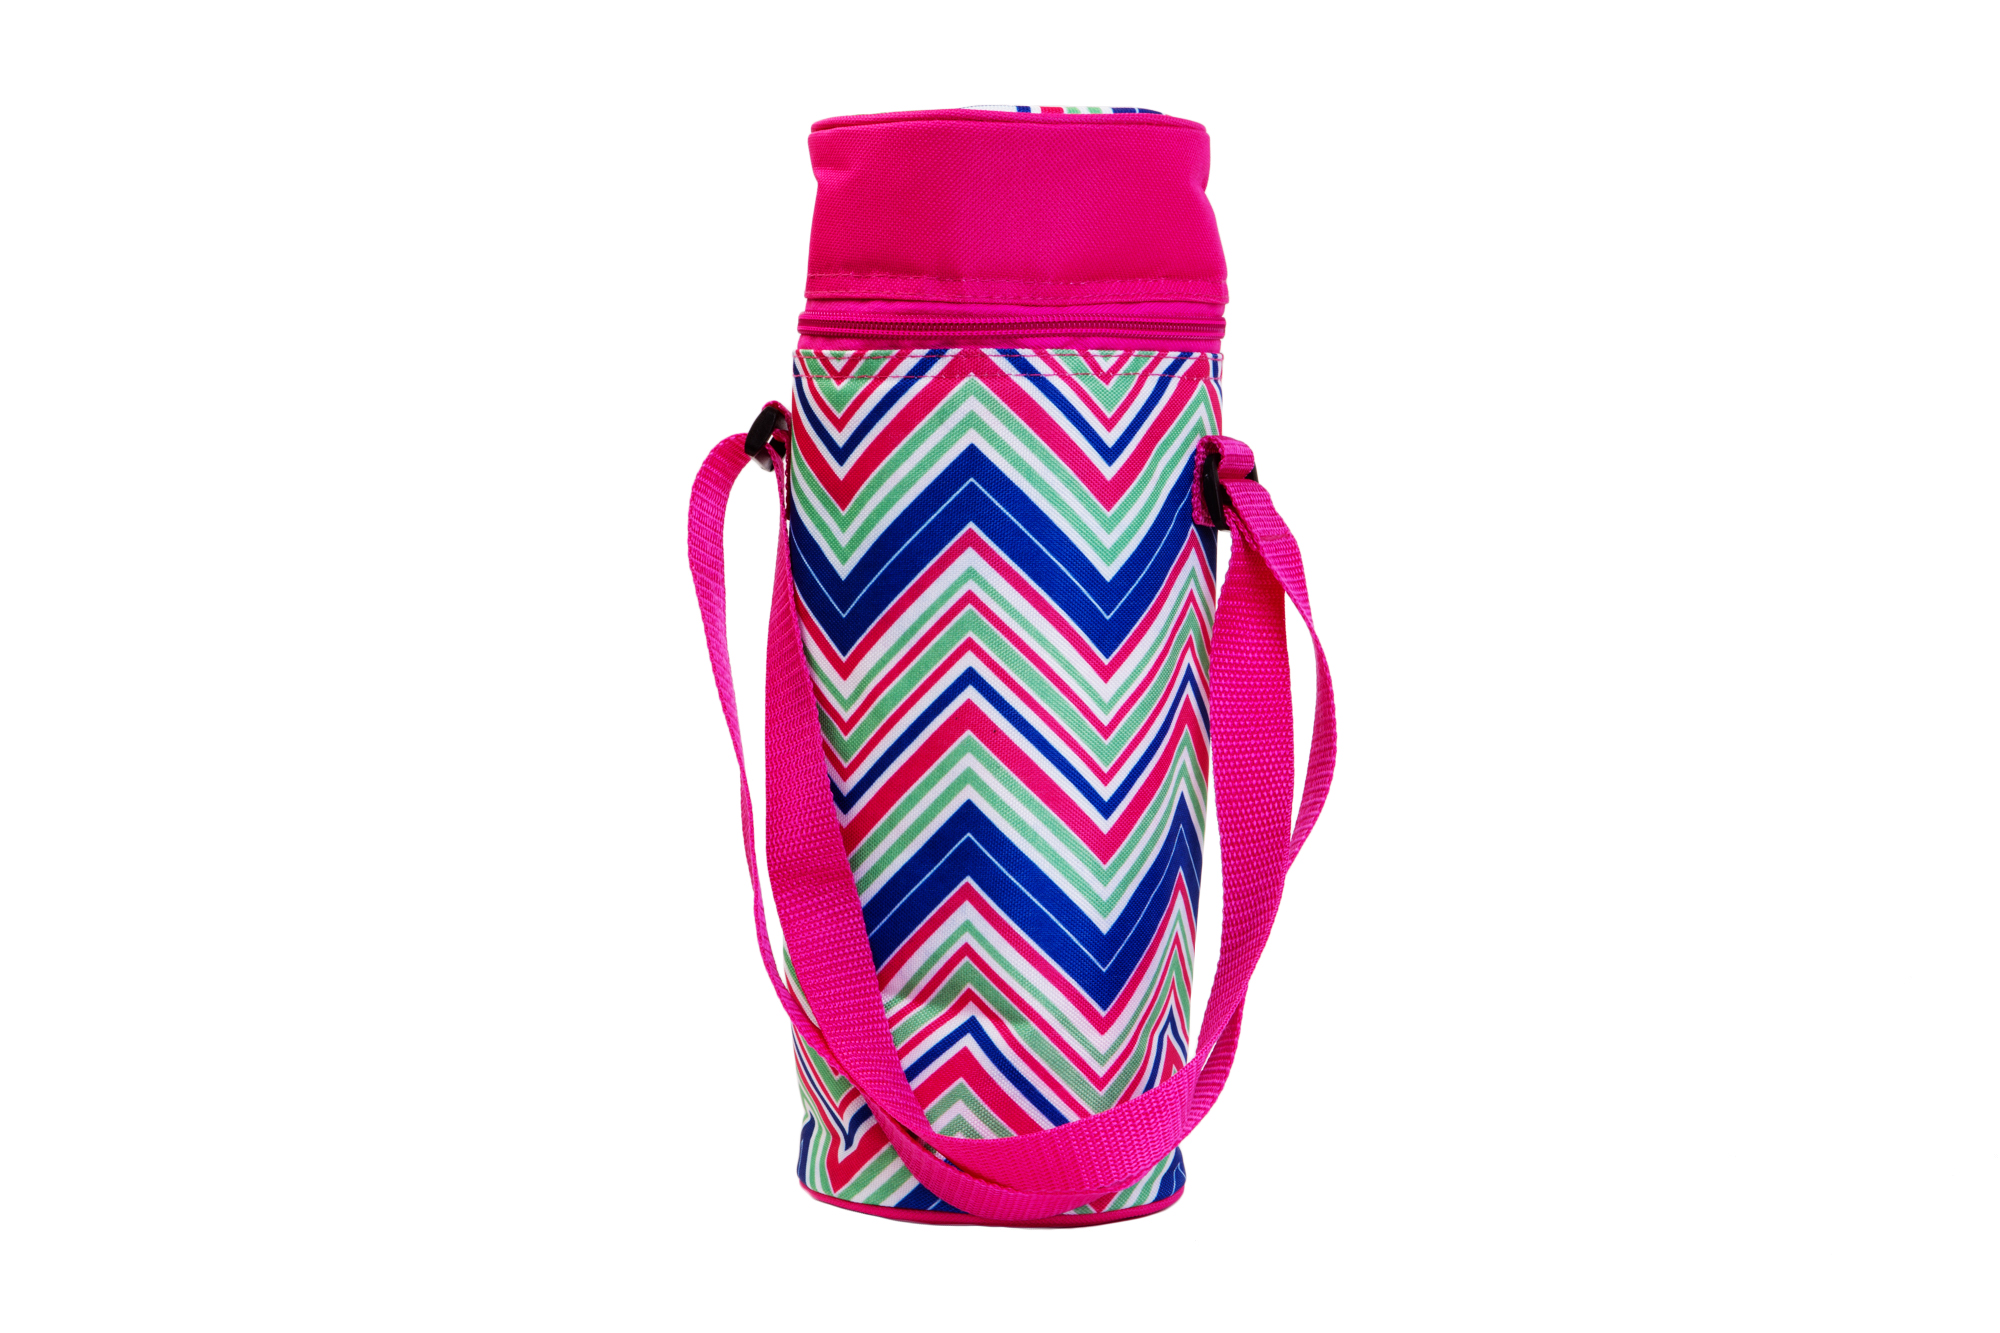 Insulated Wine Tote - Pink/Multi Chevrons